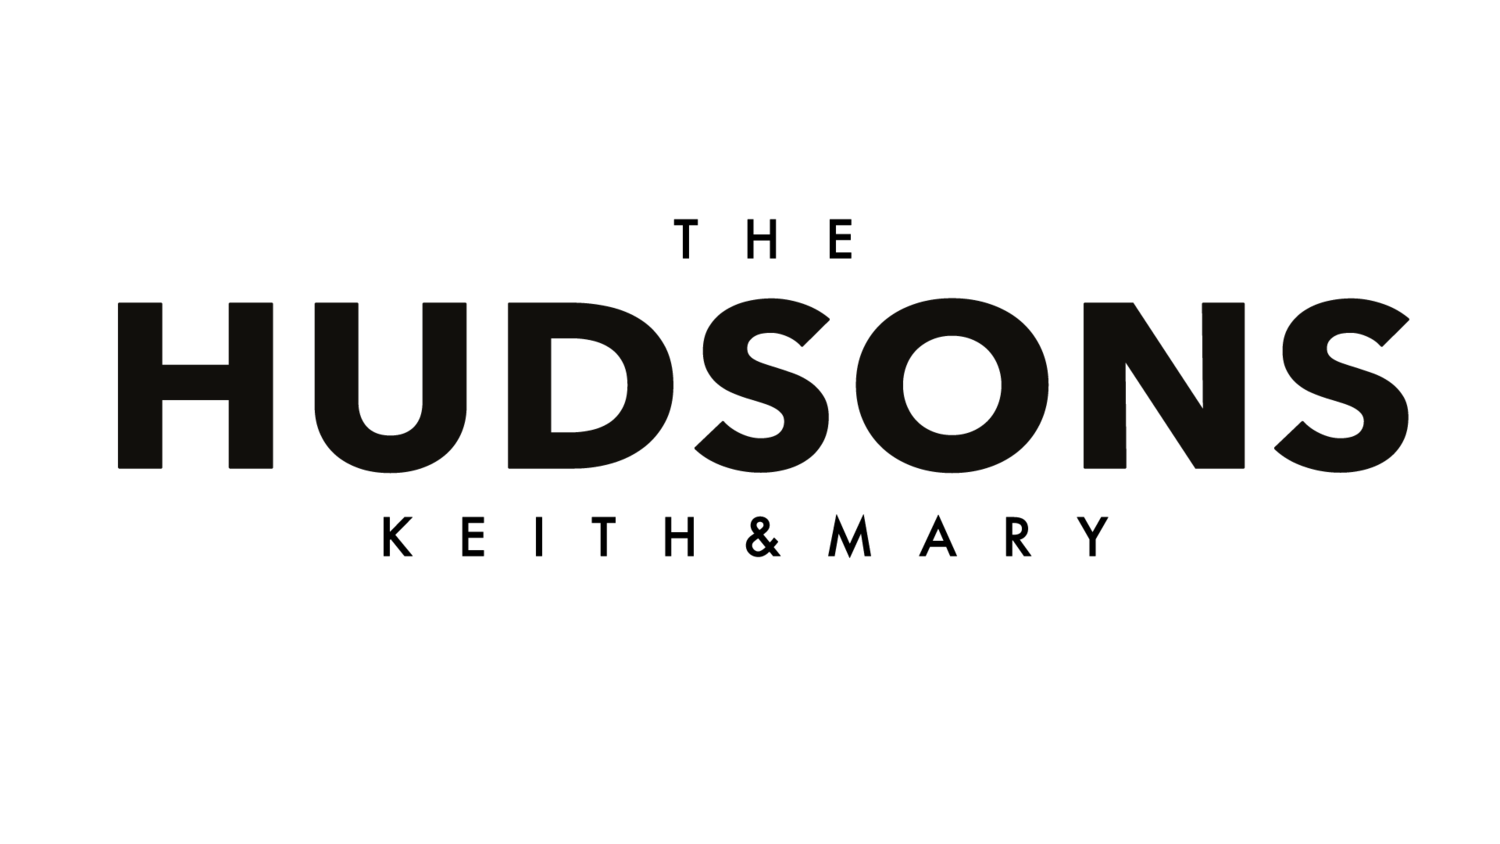 The Hudsons